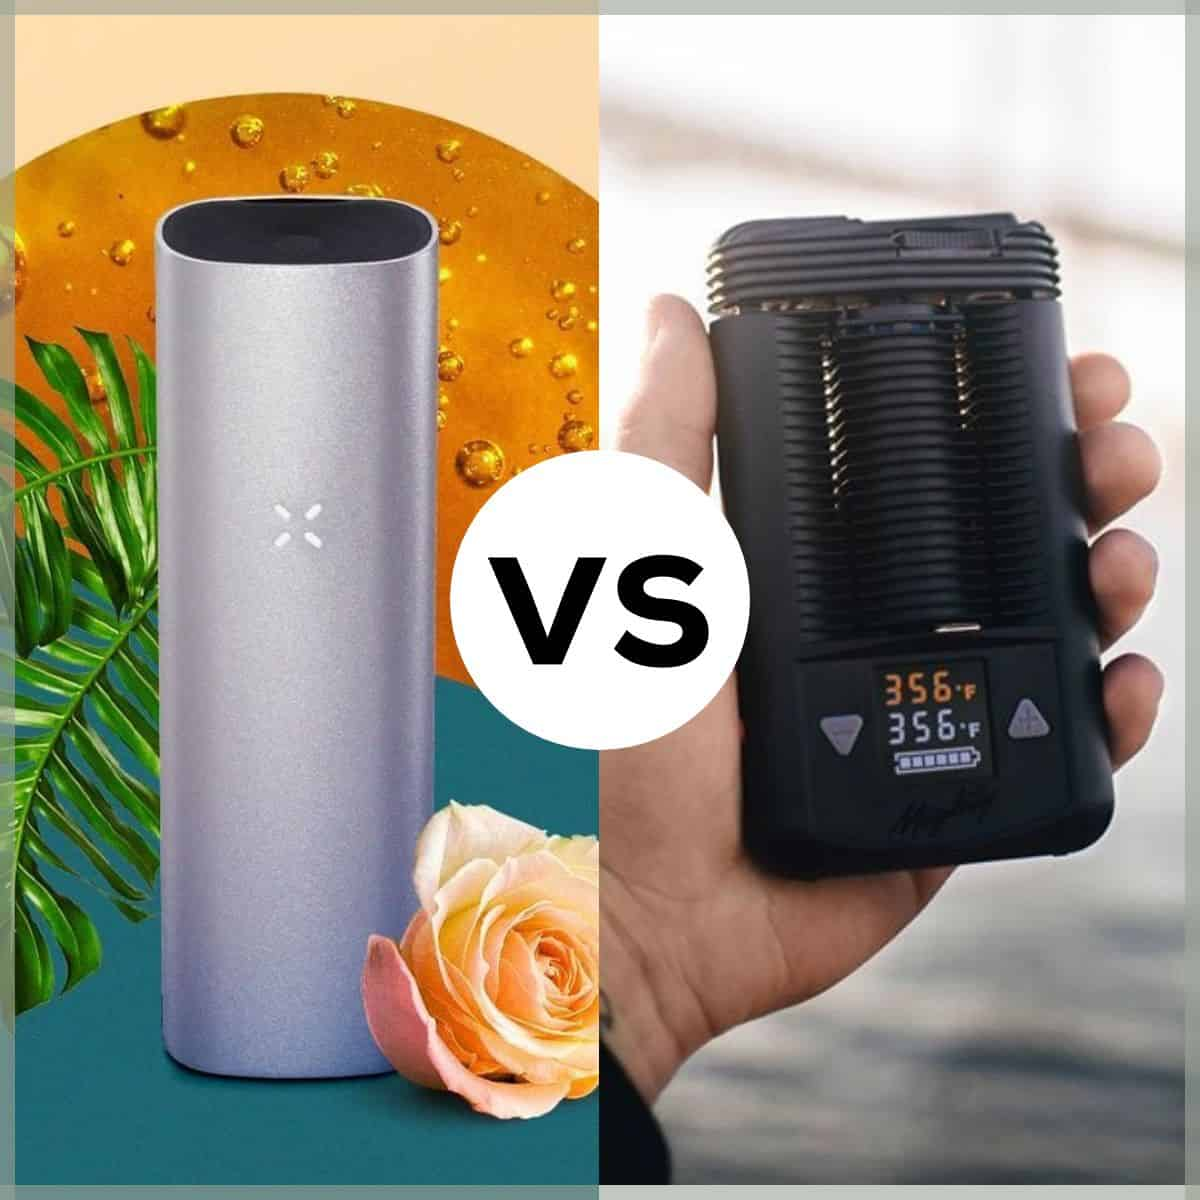 pax 3 vaporizer vs mighty vaporizer